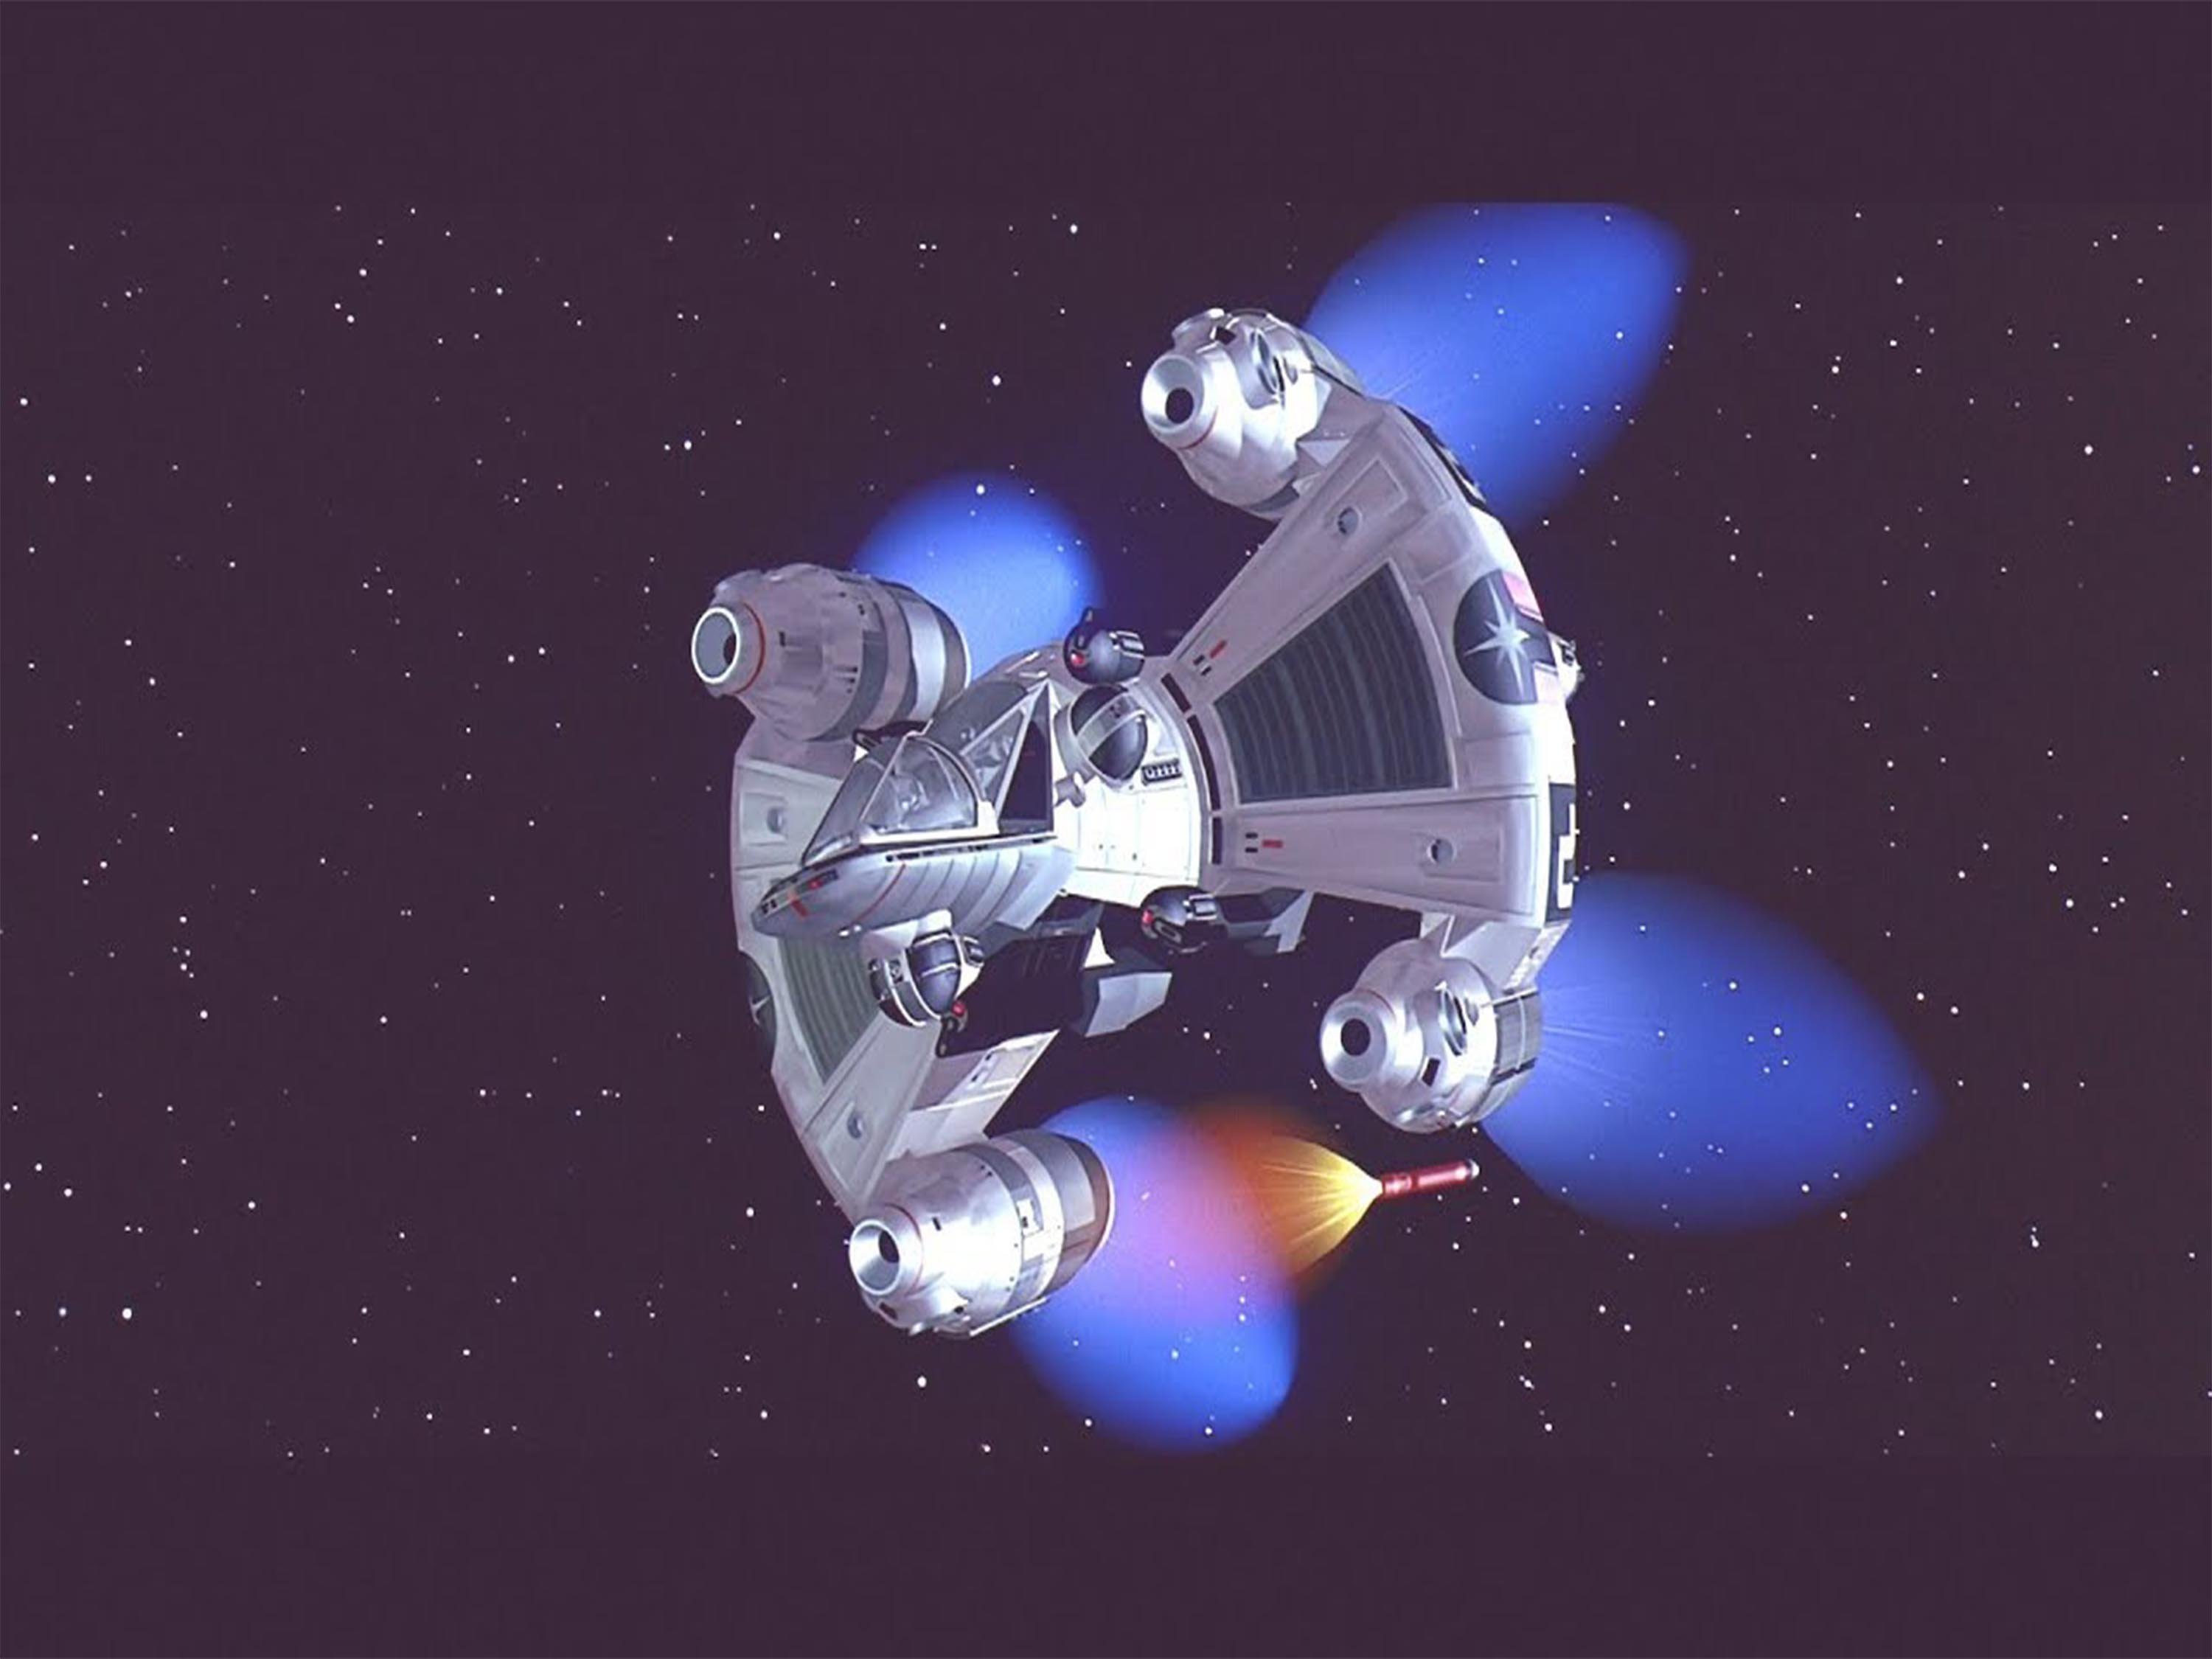 ©1984, Digital Productions, Inc., The Last Starfighter